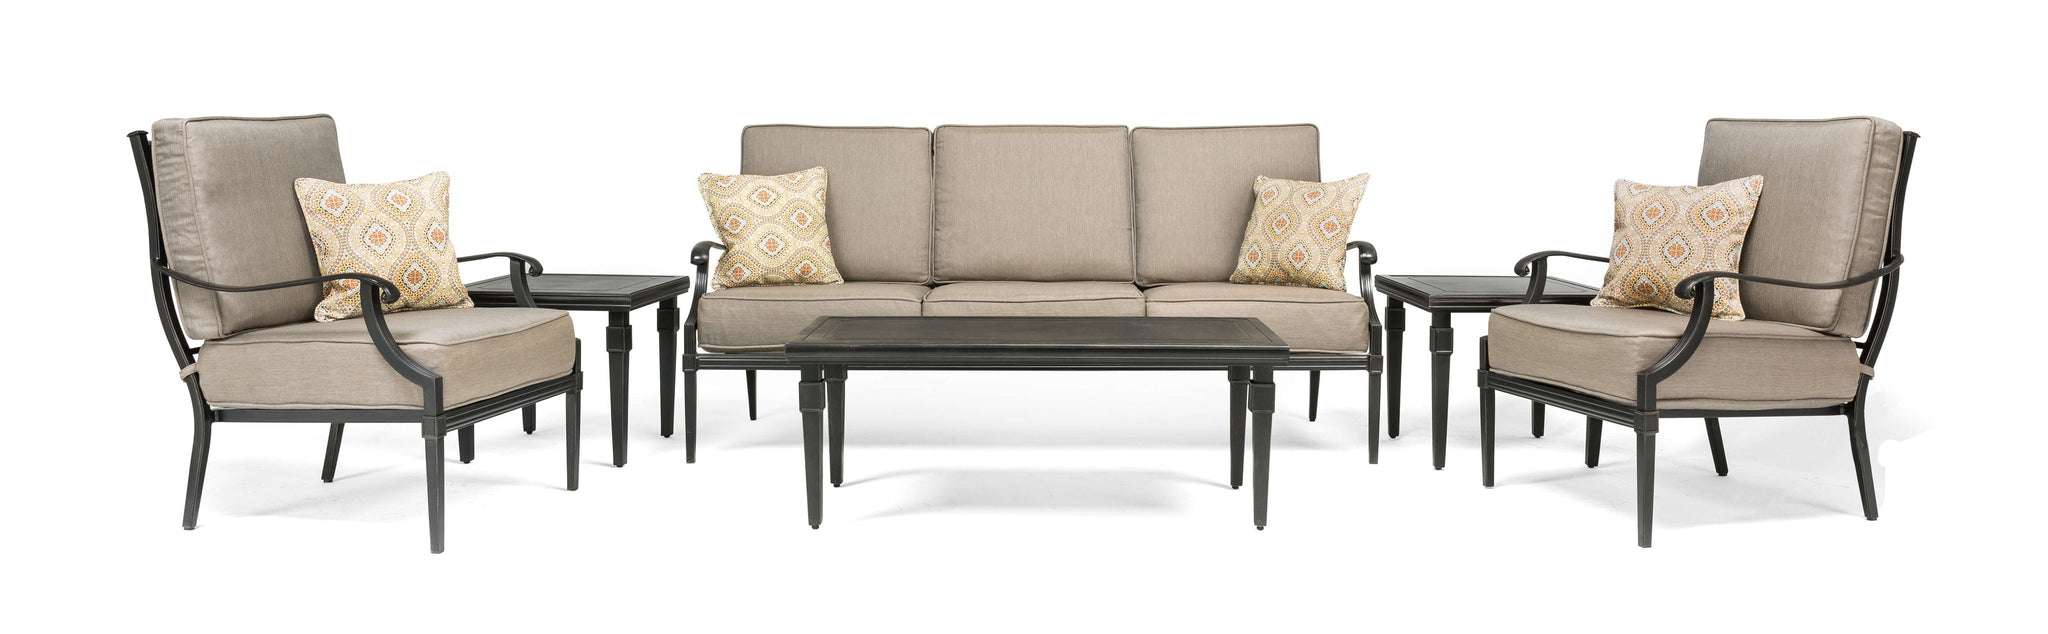 100 Coffee Table And Chairs Platner 36Signature  : Lila6pcSeating012048x2048 from 45.32.79.15 size 2048 x 634 jpeg 129kB